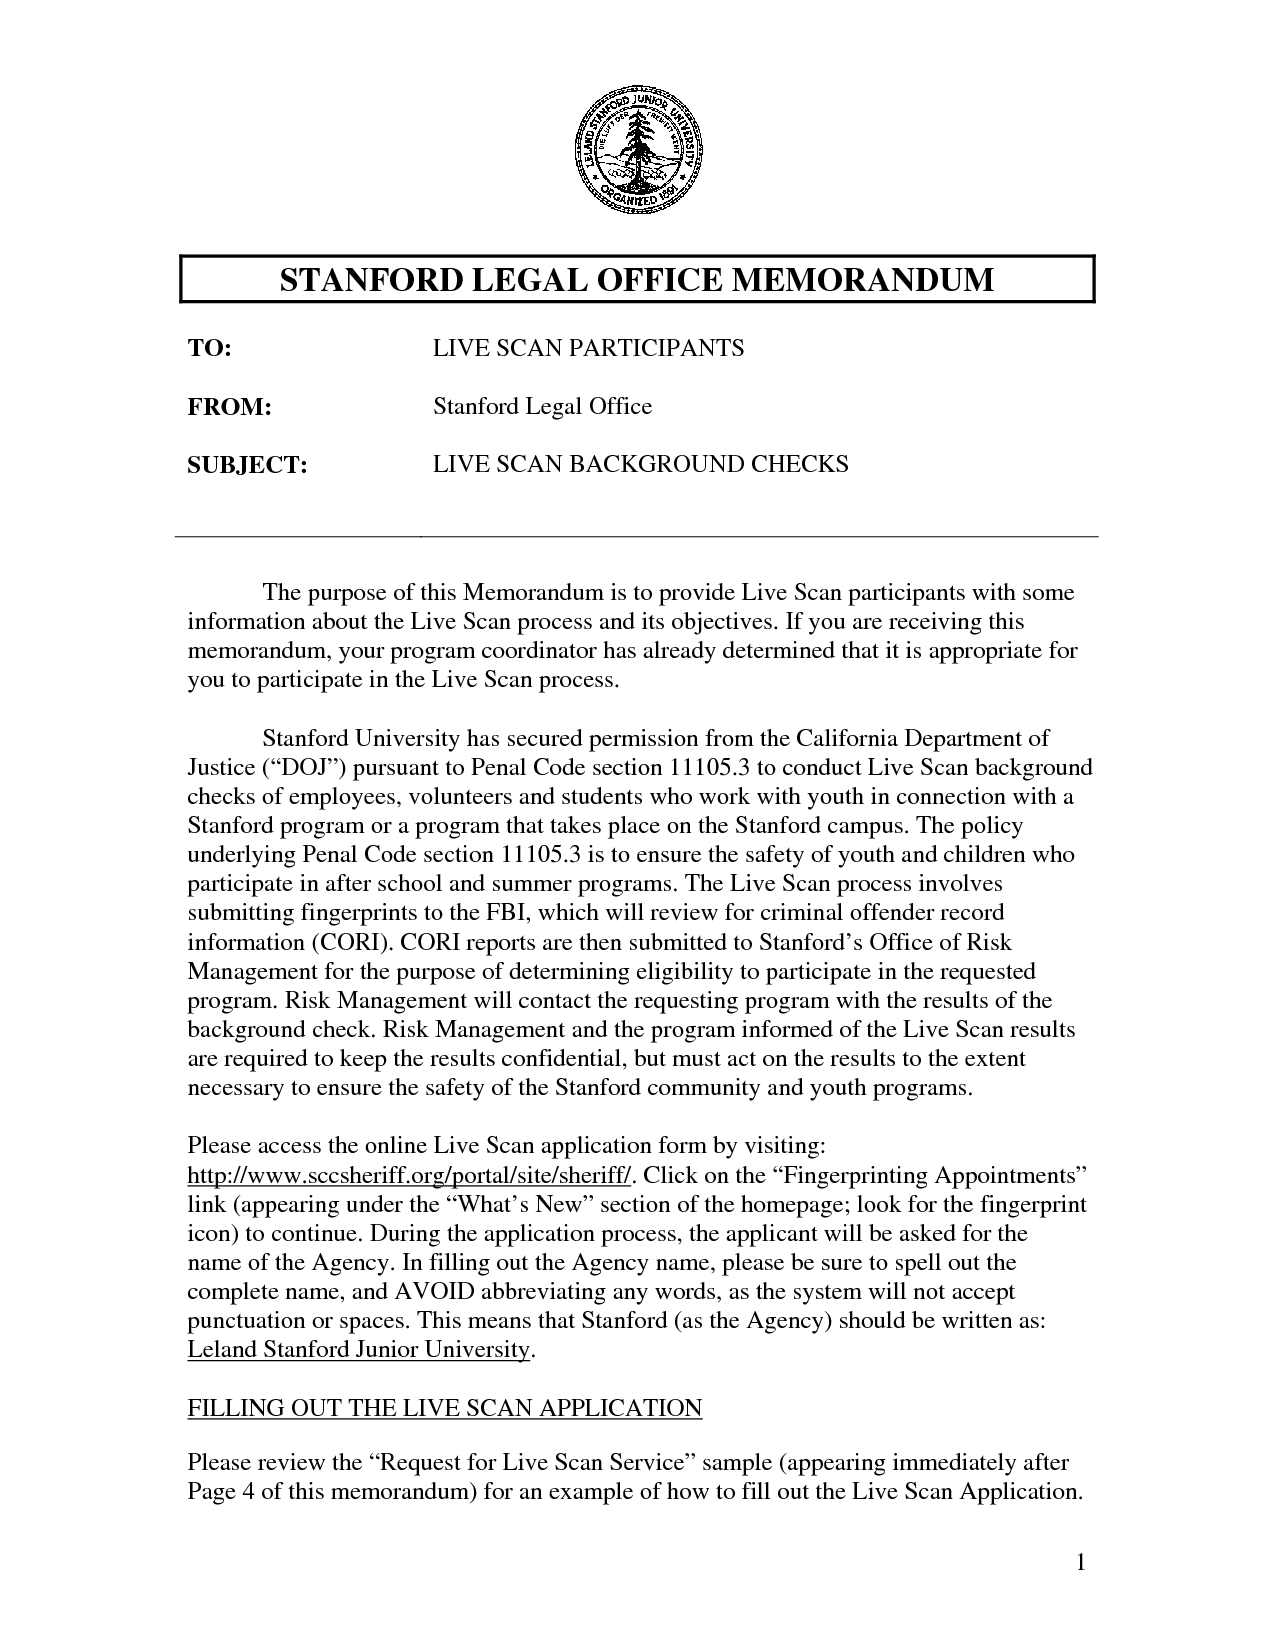 Legal memorandum sample office memo template facile likewise